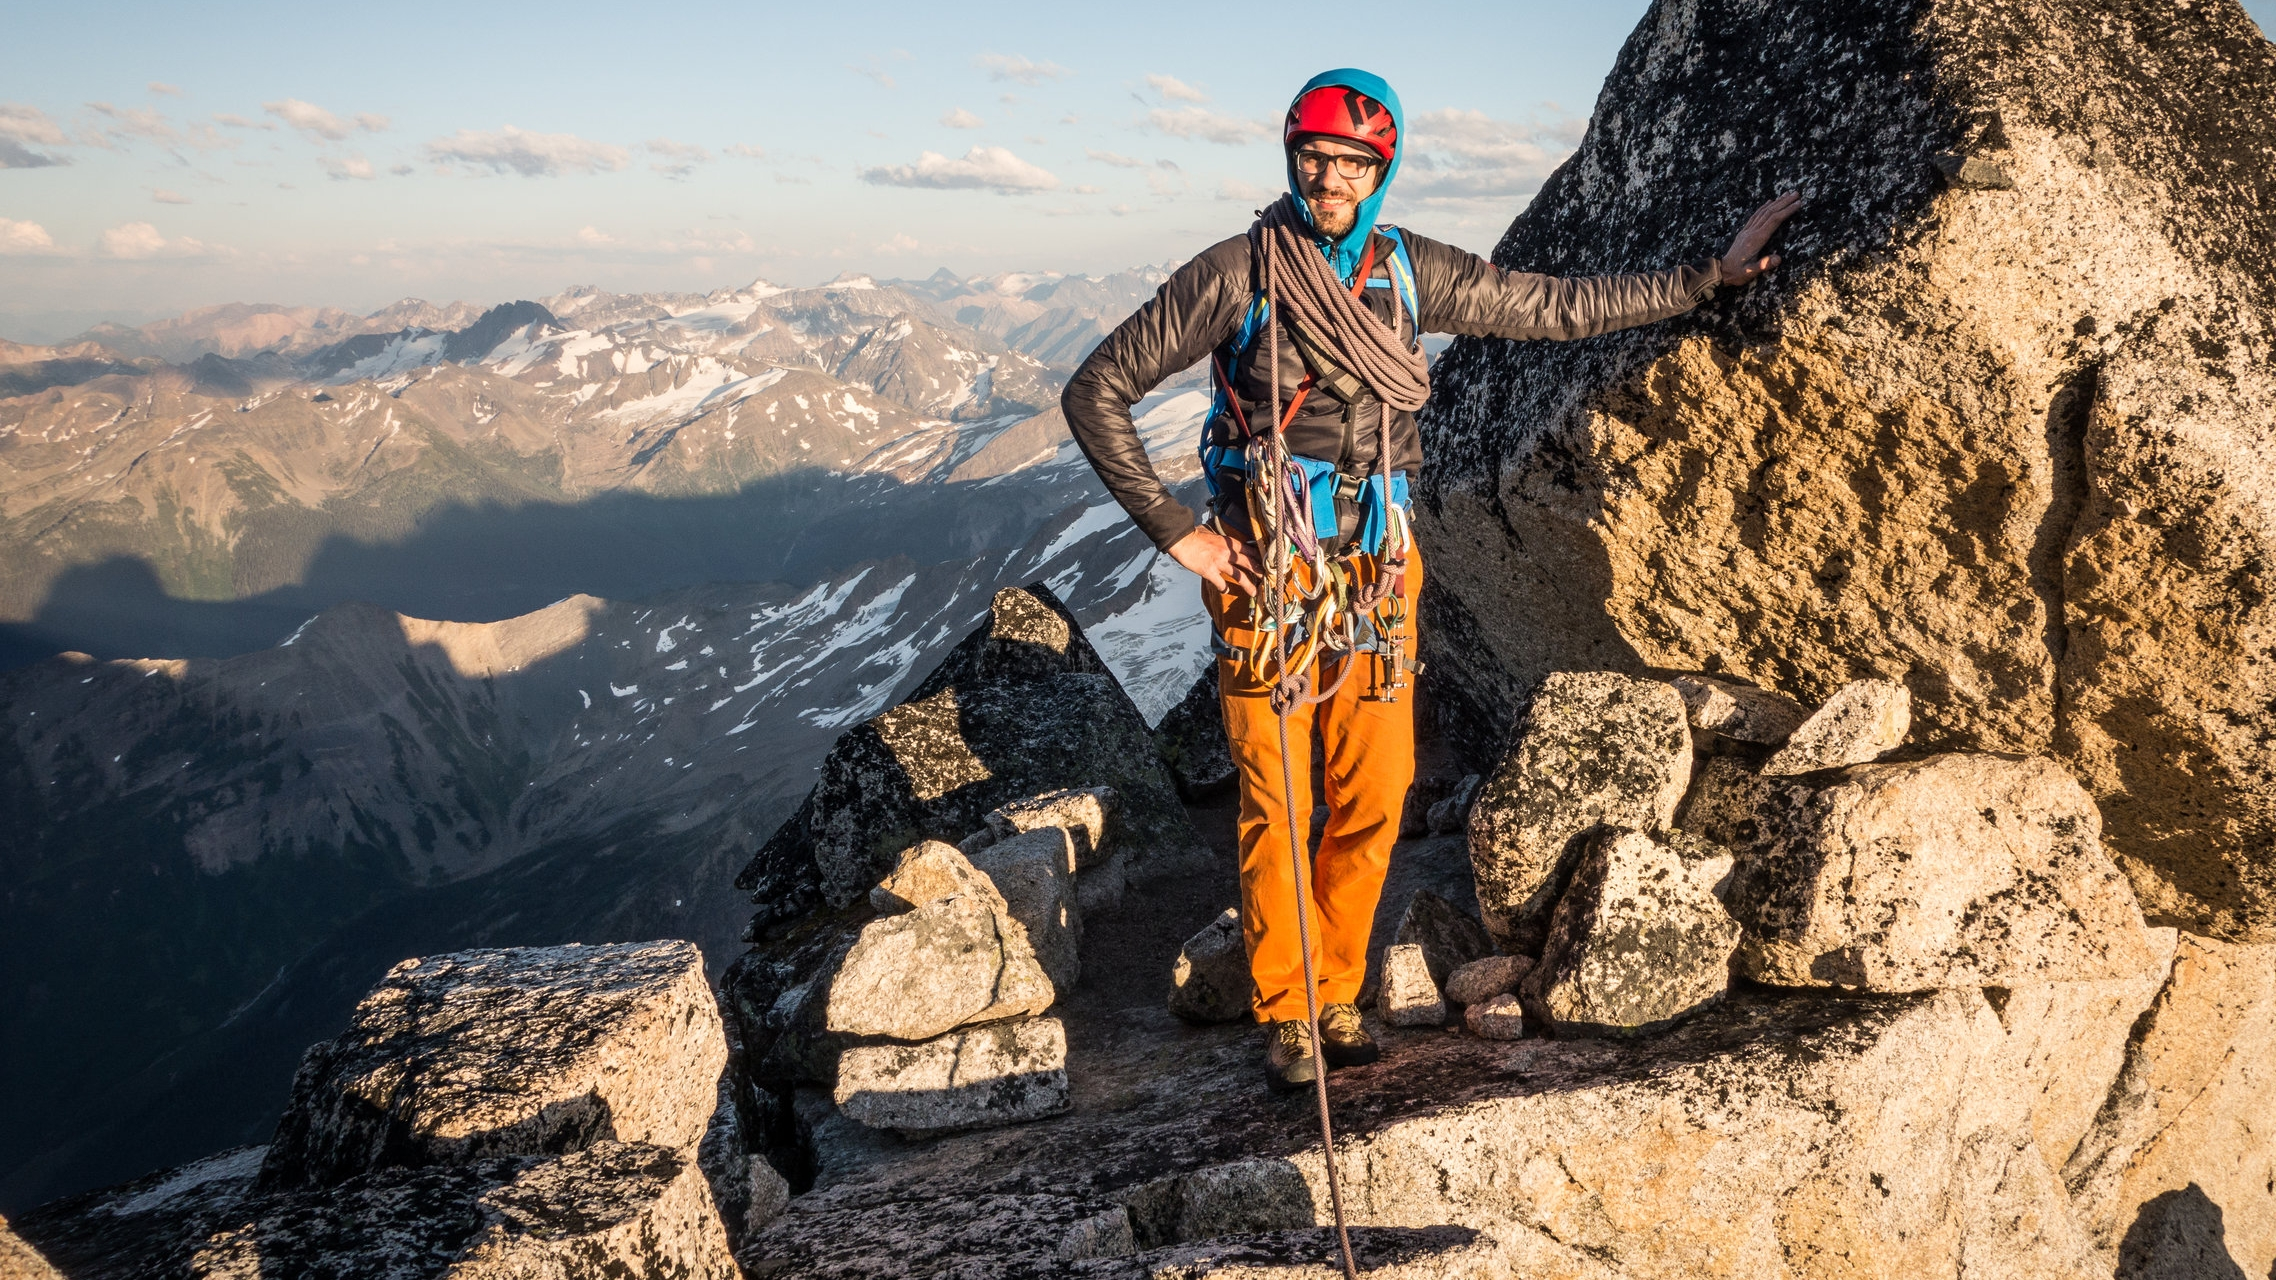 Stephen Richert [@livingvertical] - I'm an adventure-photojournalist. I tell stories of people outdoors with a camera.